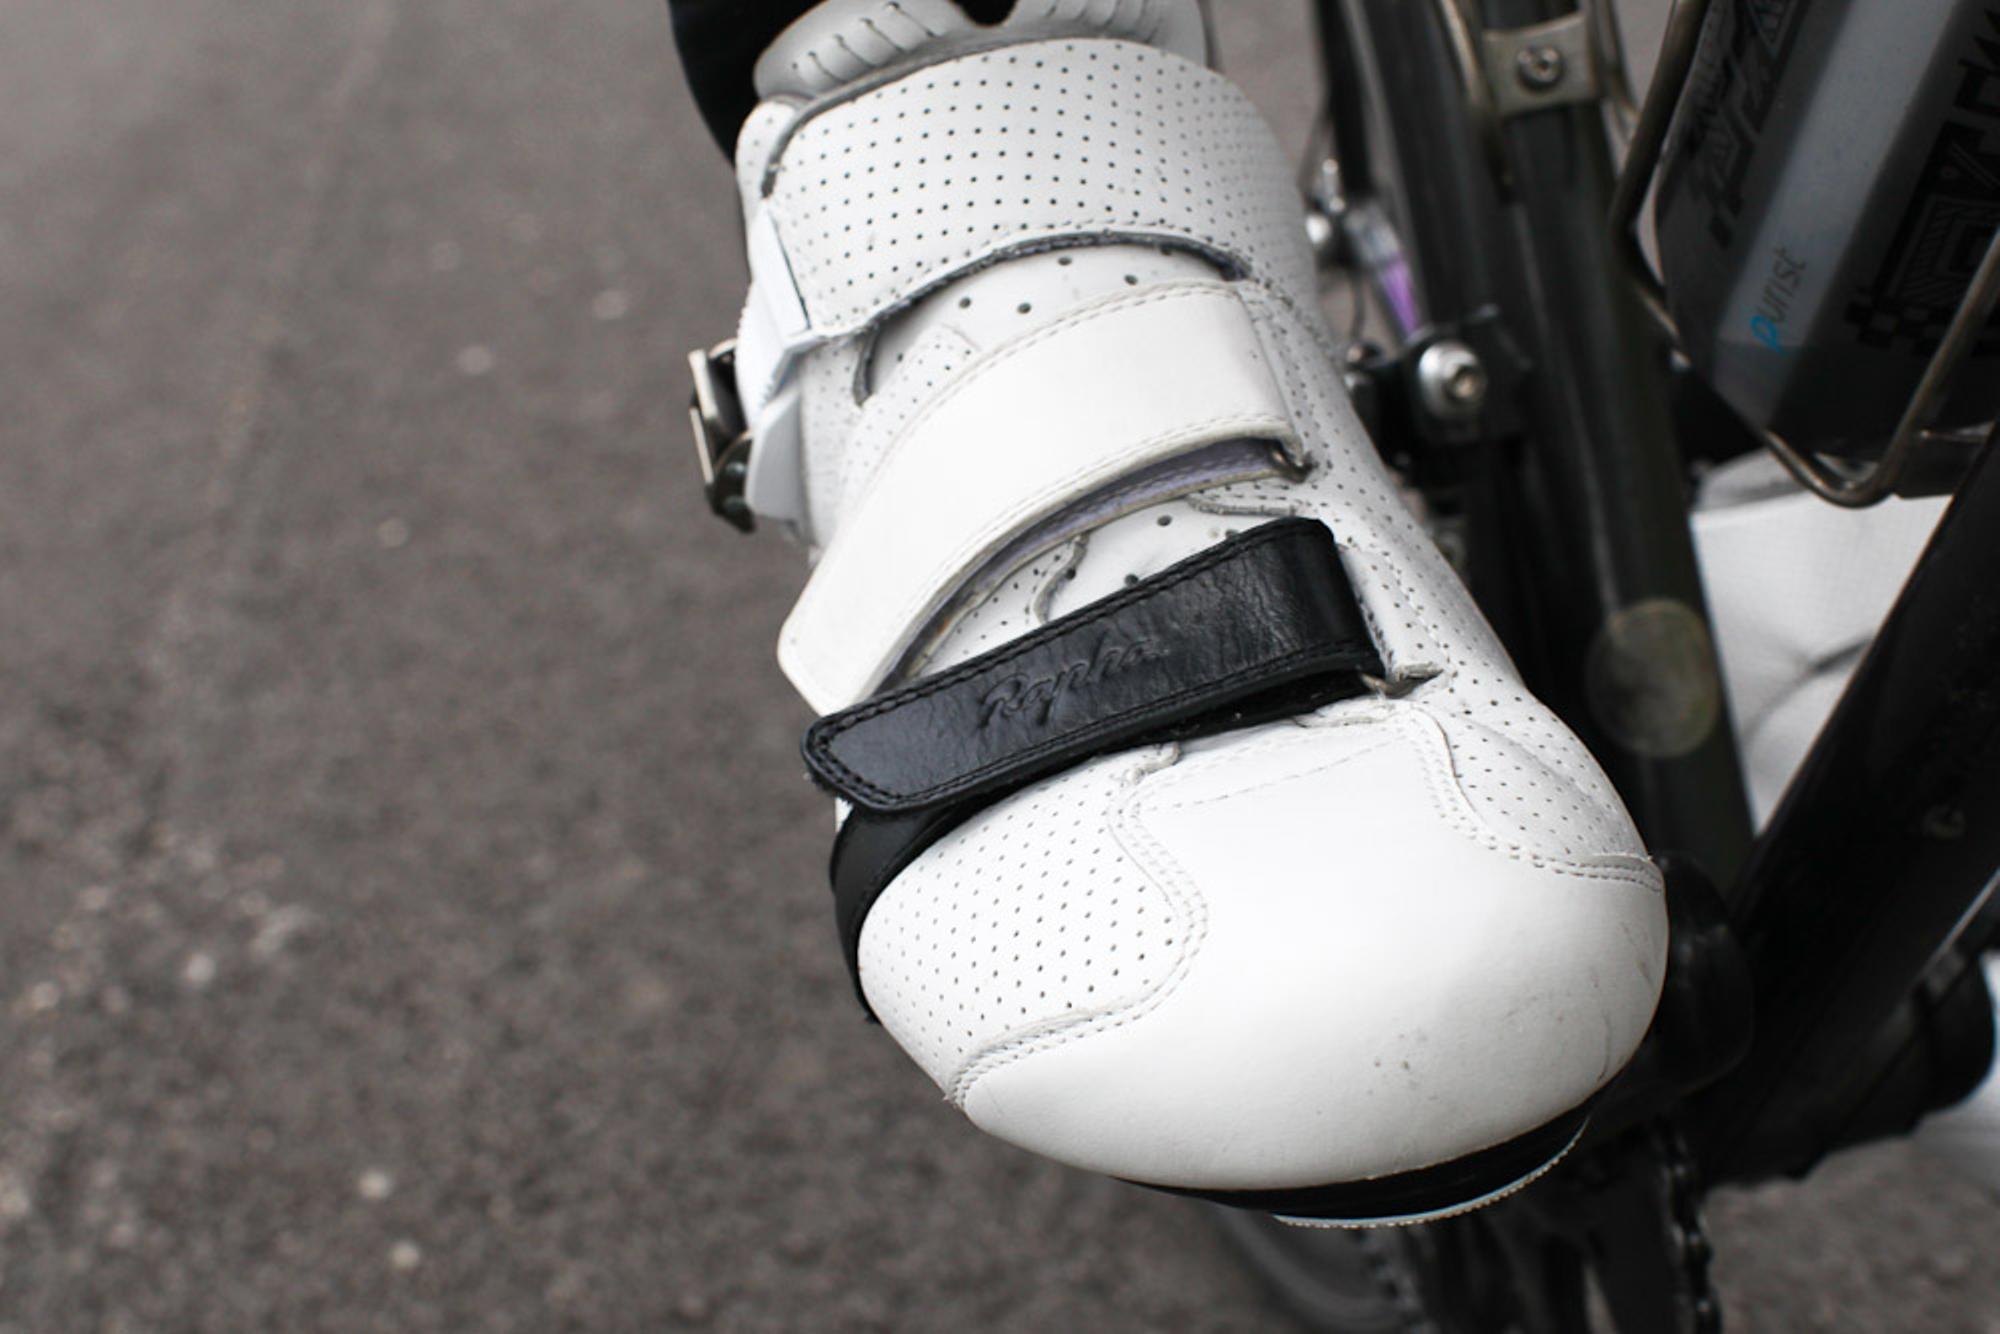 When Rapha made these, they wanted them to be stiff enough to race in, yet comfortable enough for longer rides.